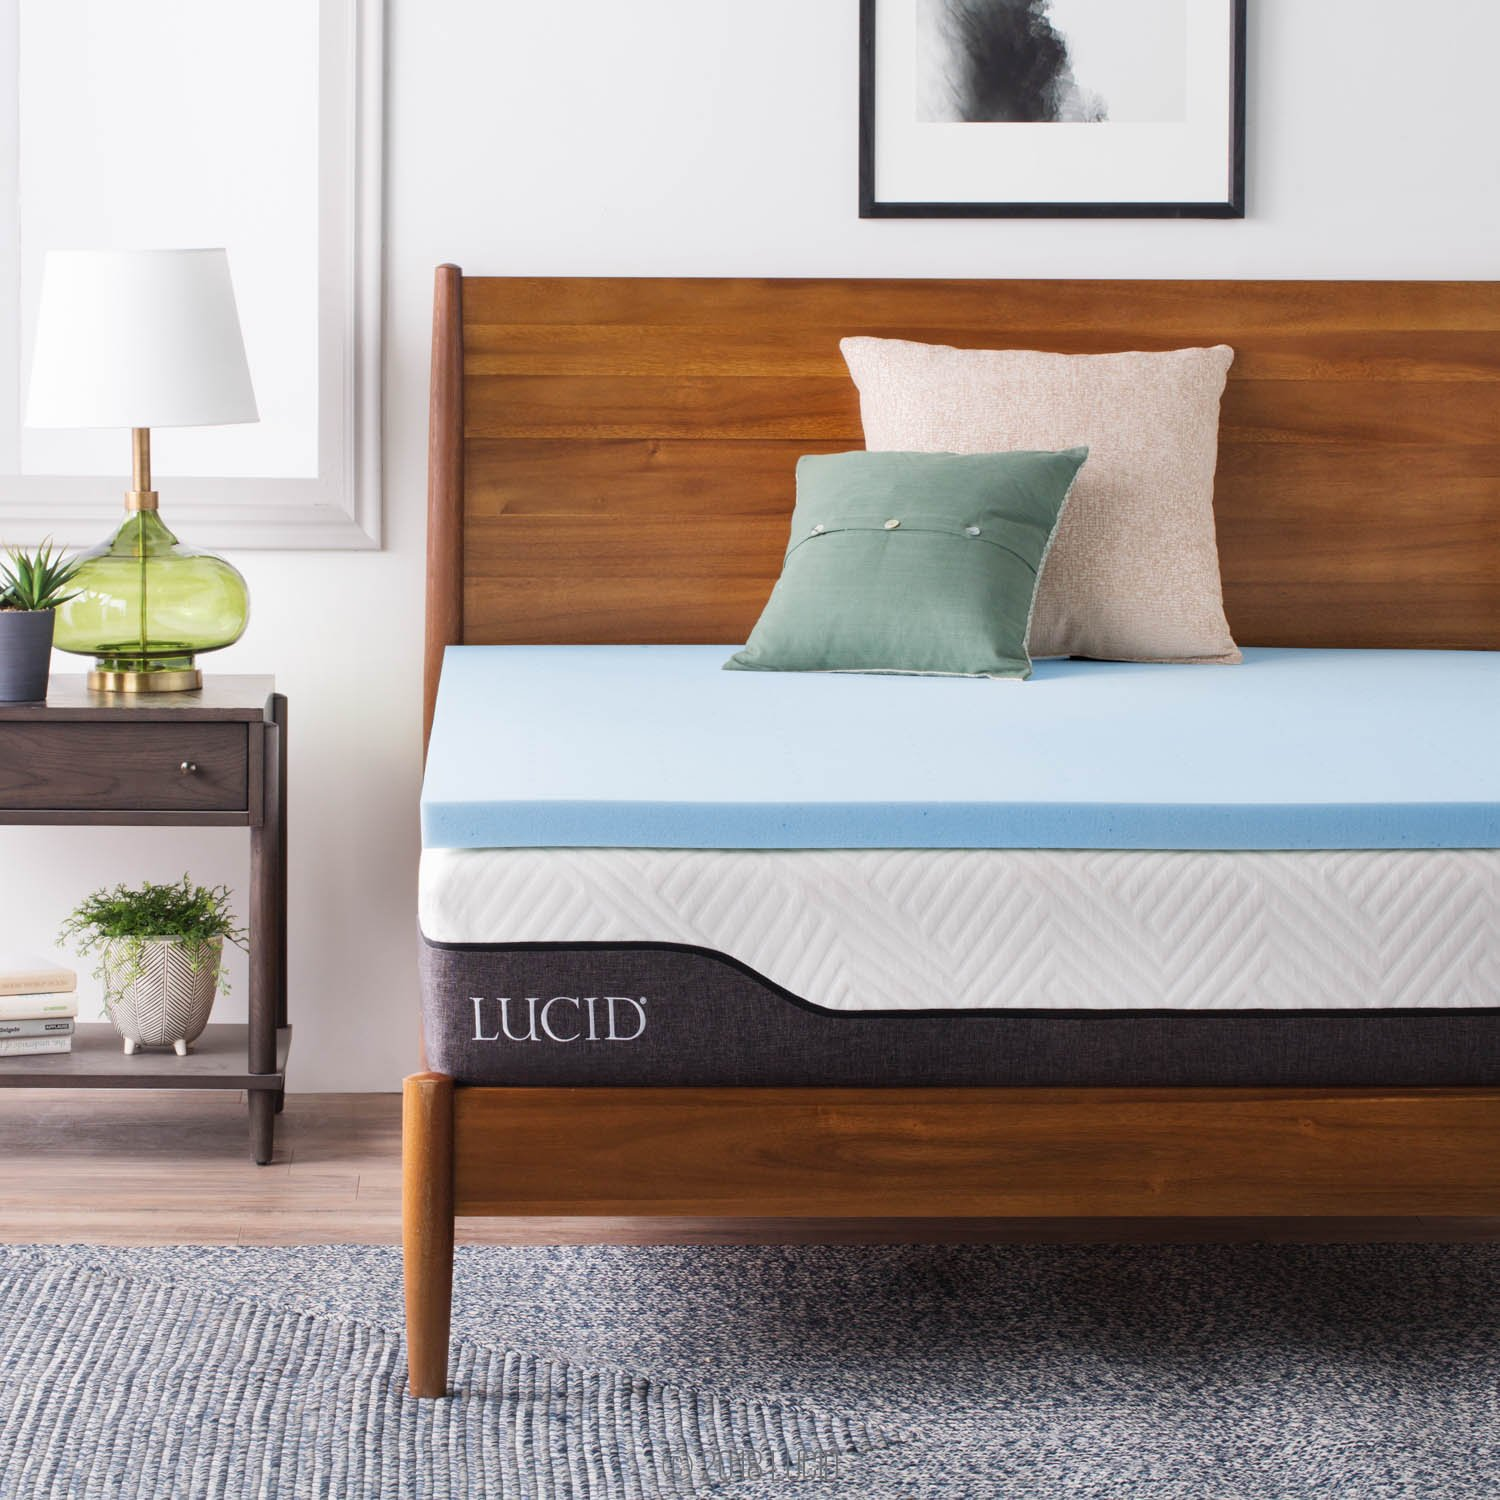 LUCID 2-Inch Gel Infused Memory Foam Mattress Topper - Twin XL